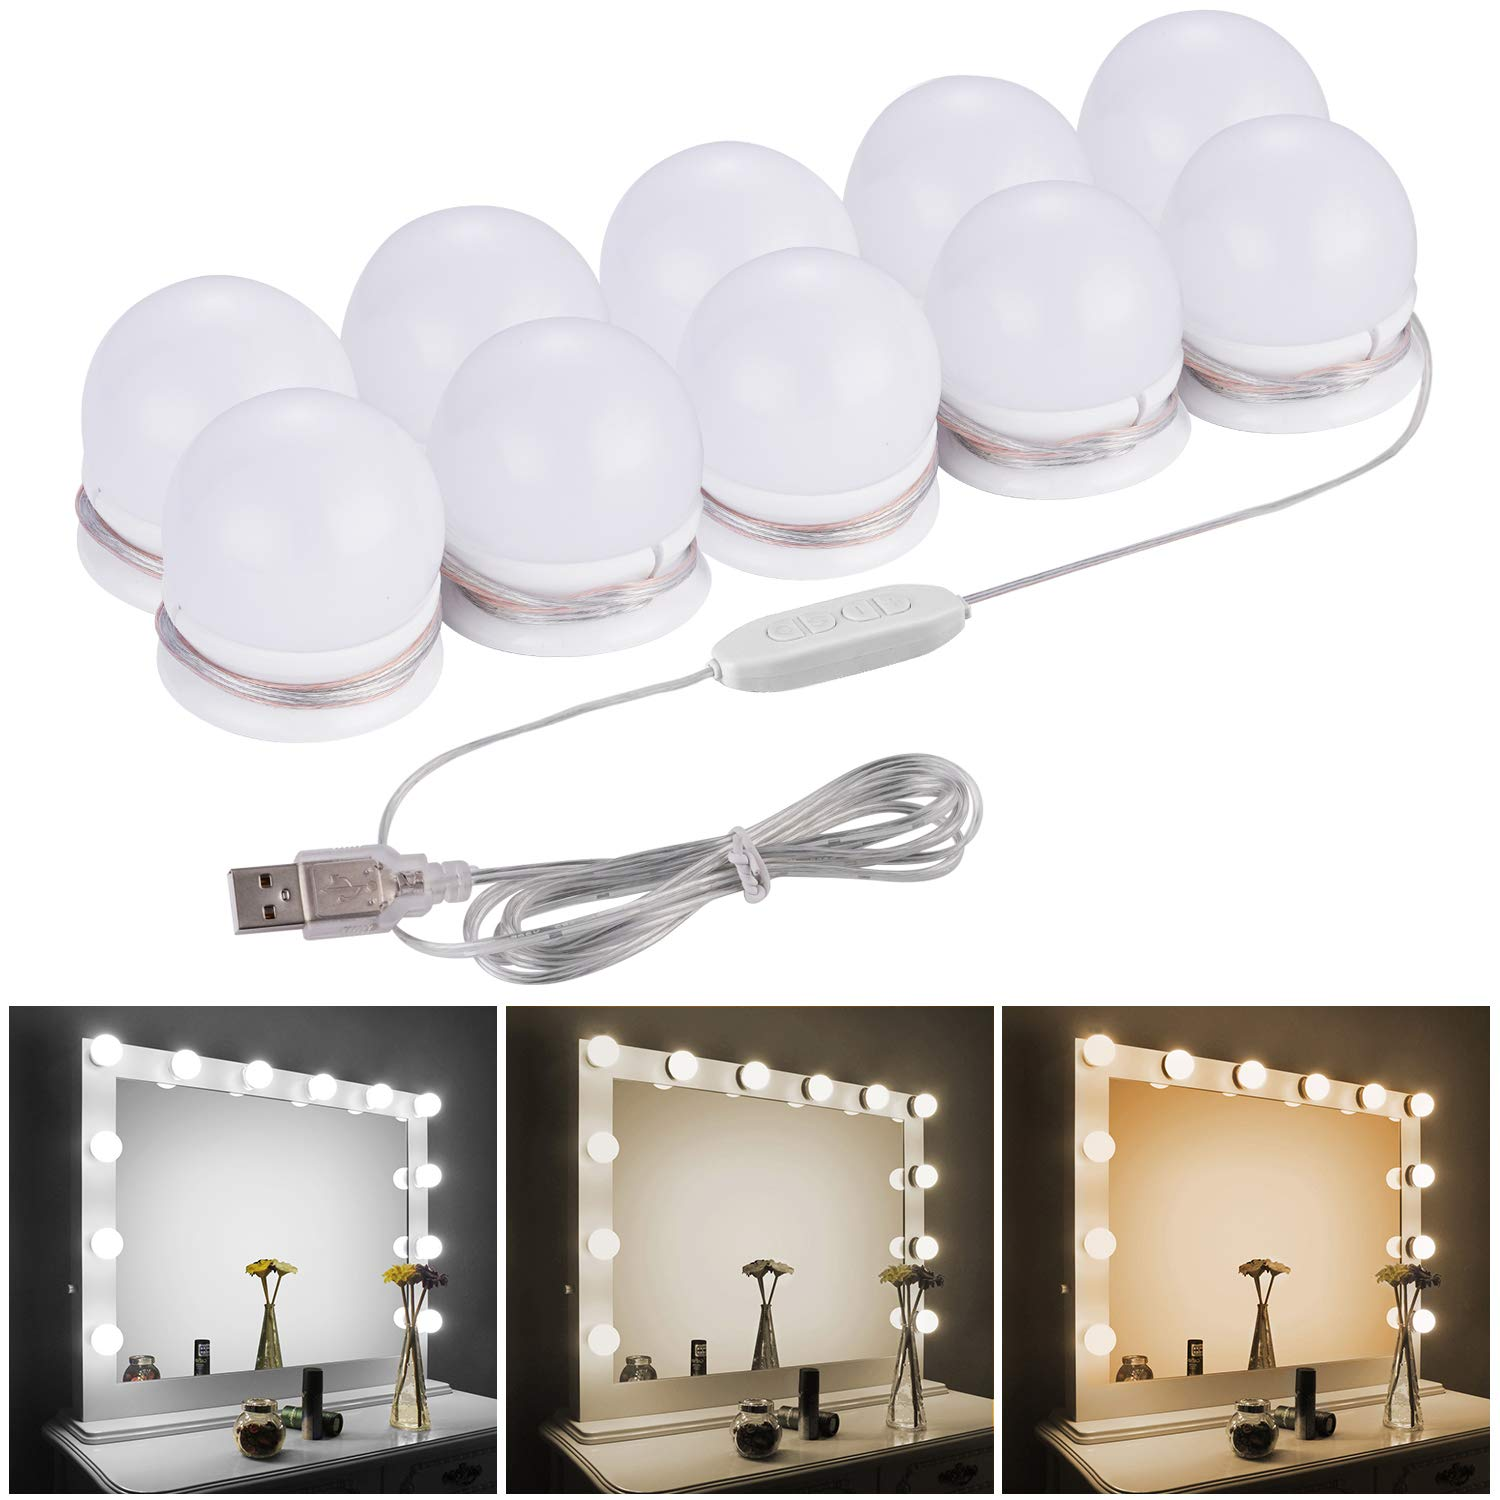 LED Vanity Mirror Lights Kit-CamelHome Upgraded 3 Dimmable Color 10 Led Light Bulbs for Vanity Table Set and Bathroom Mirror,Hollywood Lighting Fixture Strip with USB Charge Cable(Mirror NOT Include)